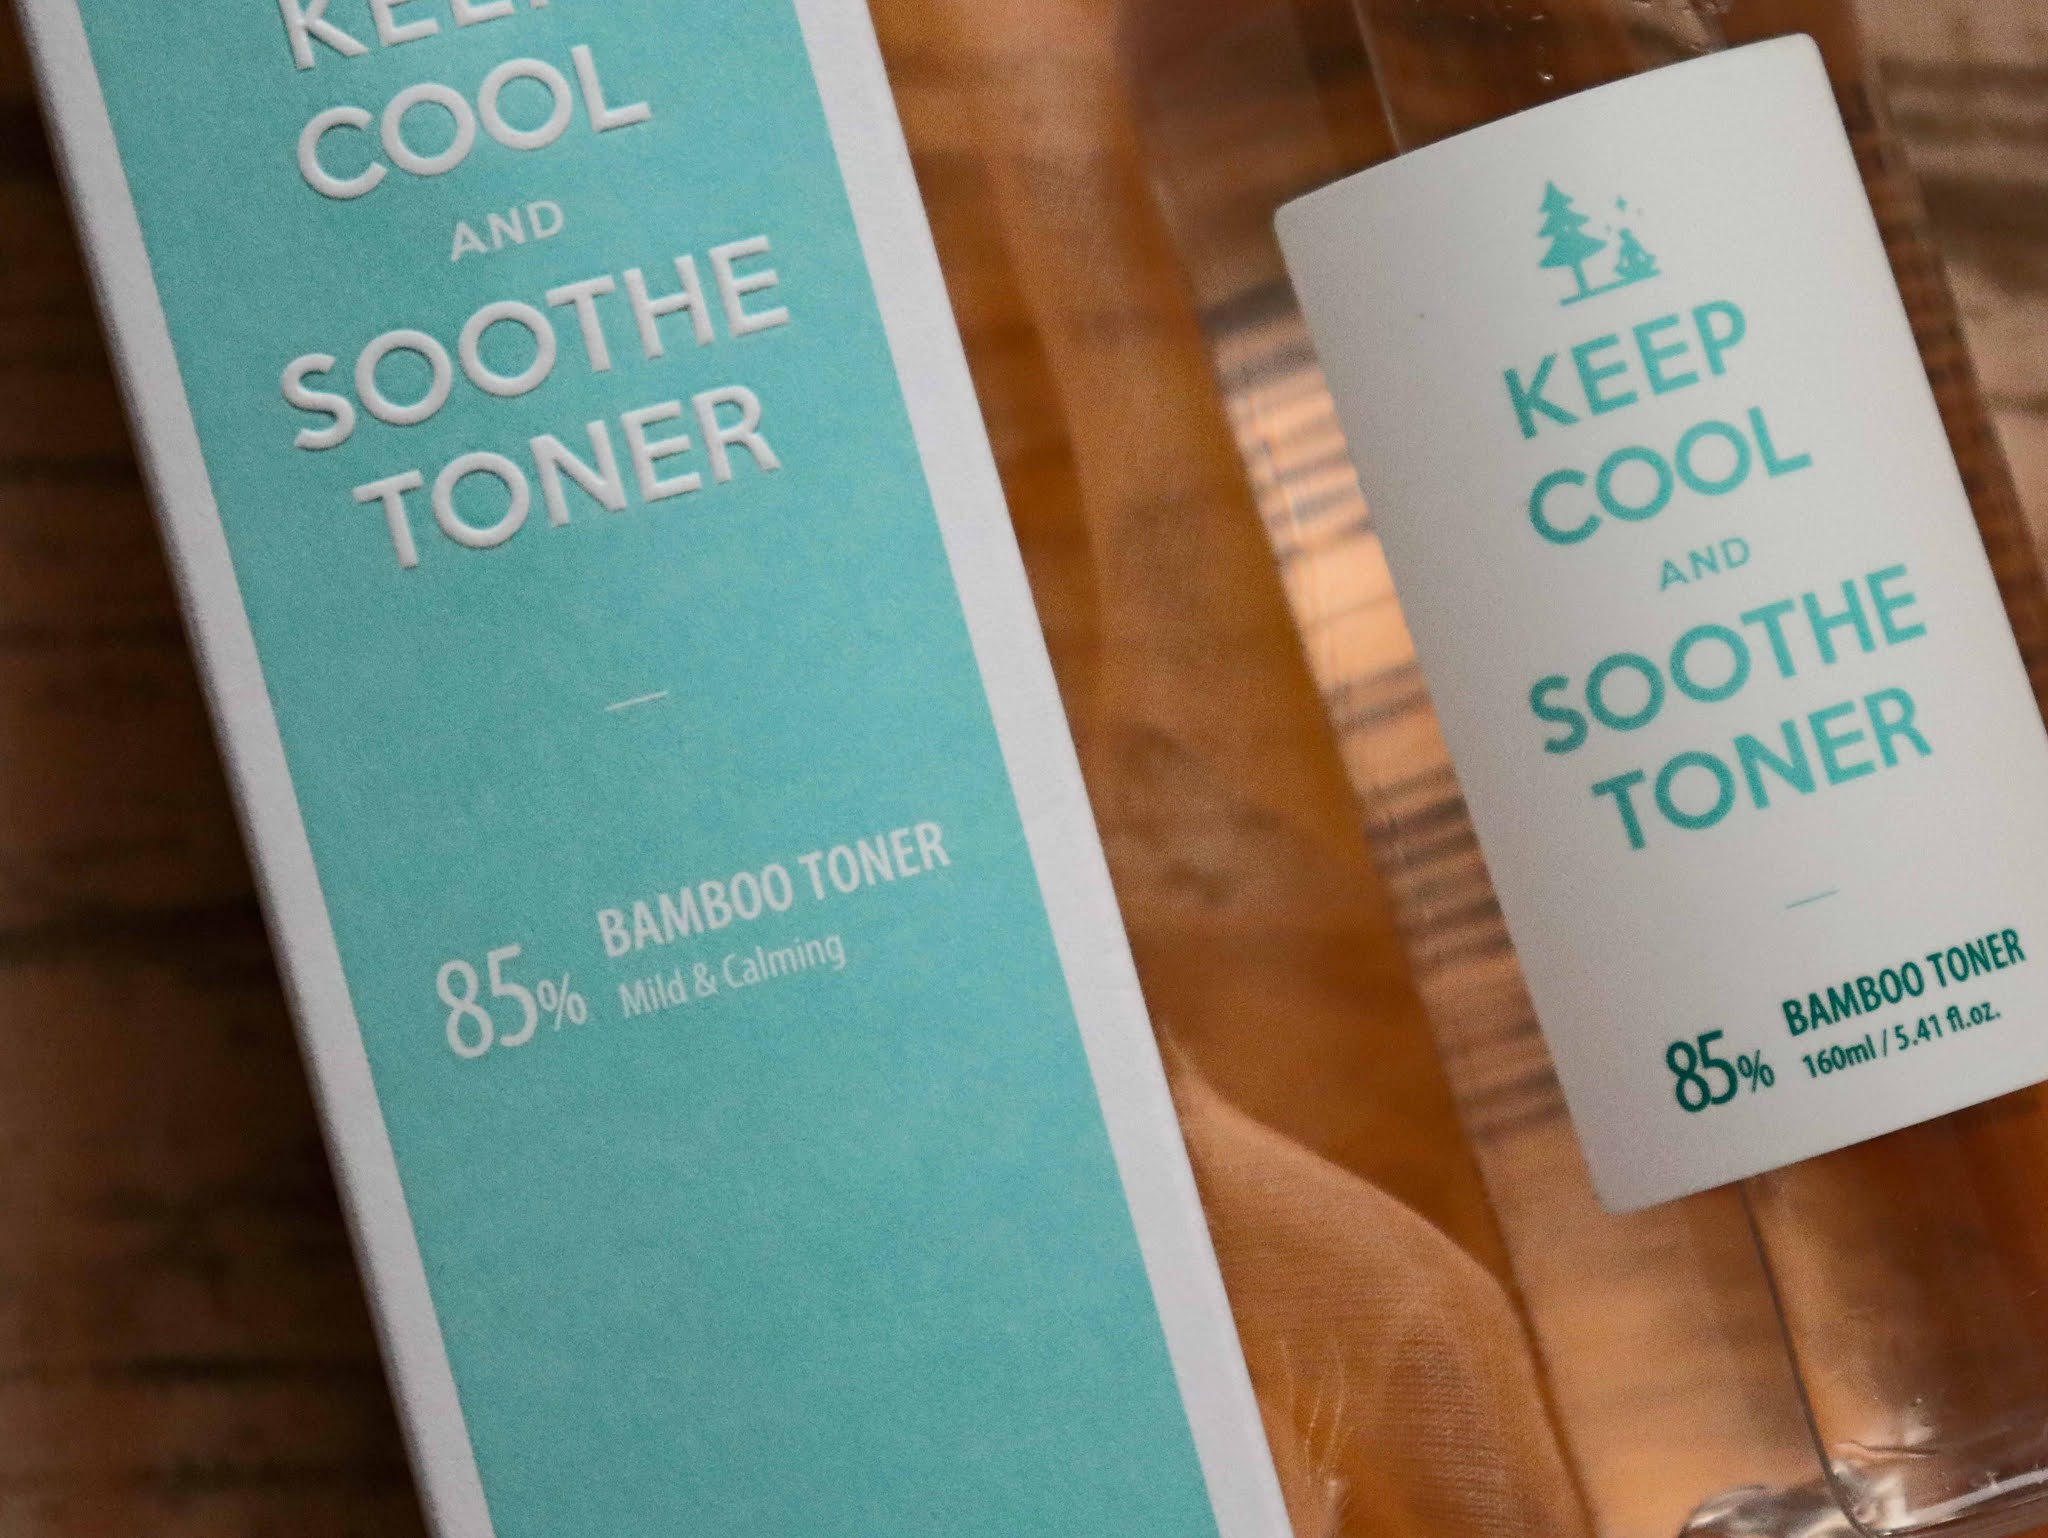 Keep Cool and Soothe Toner - Maccaron